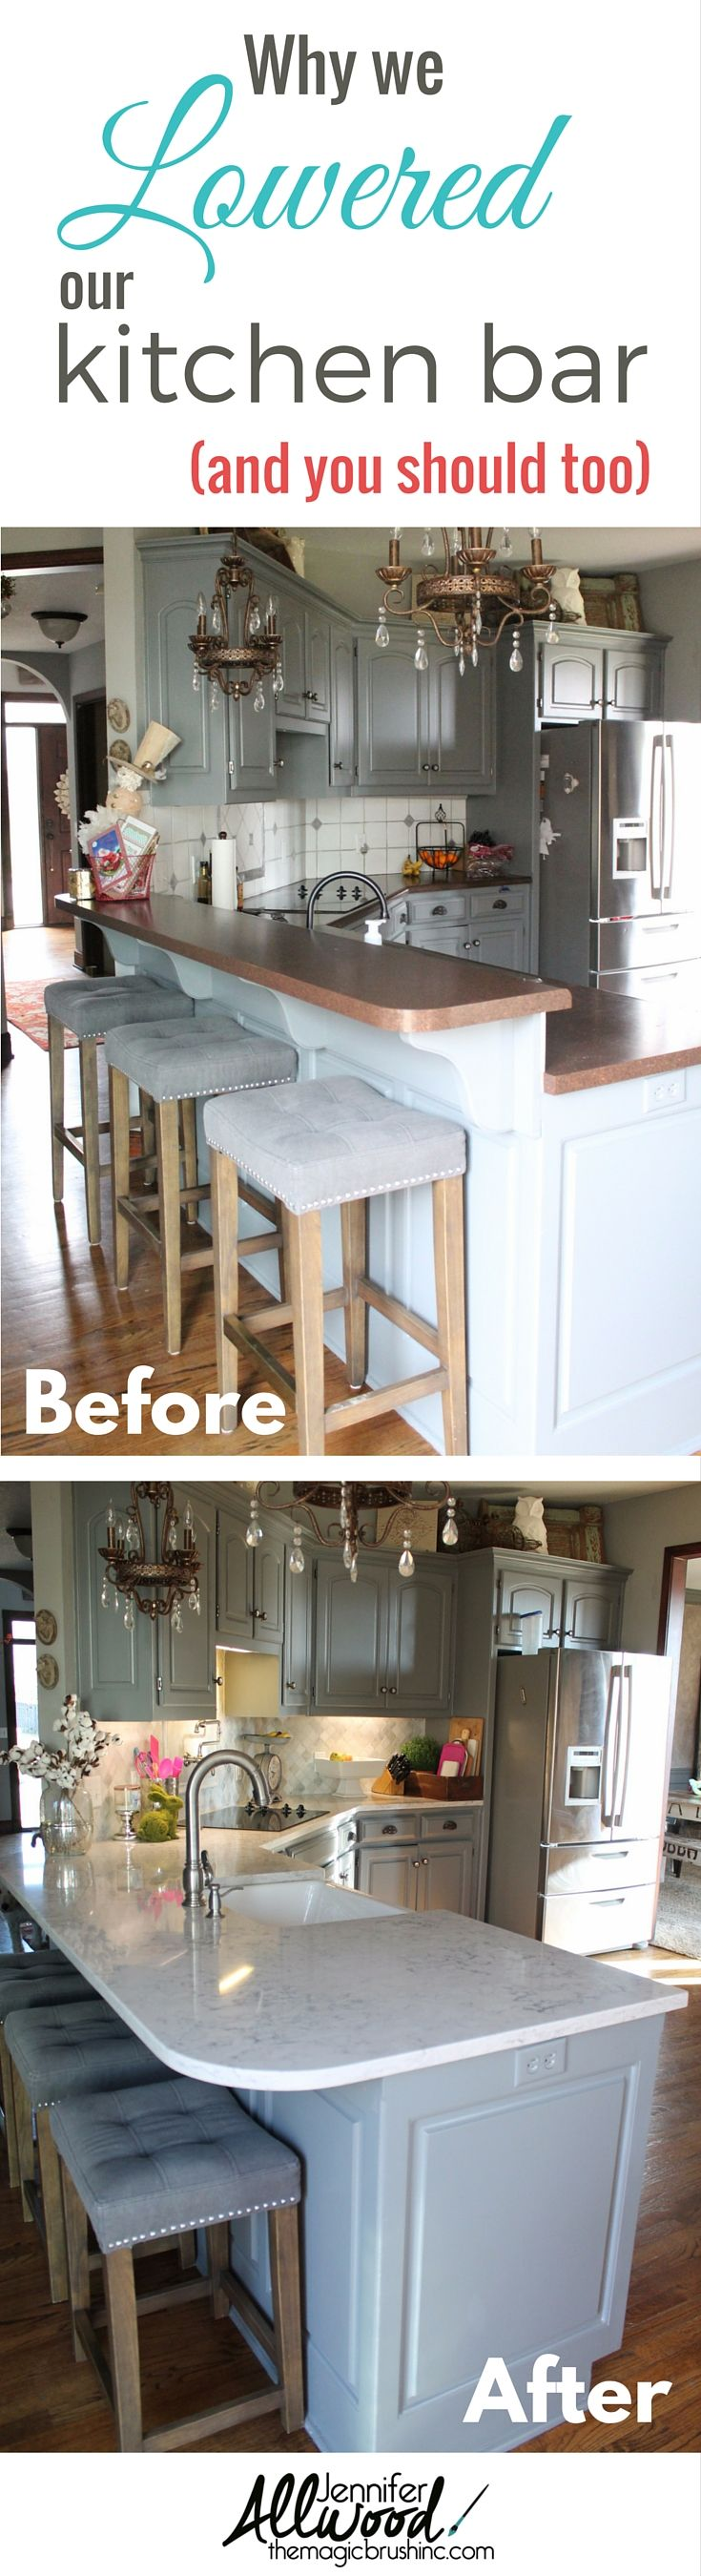 25+ best ideas about Kitchen Bars on Pinterest